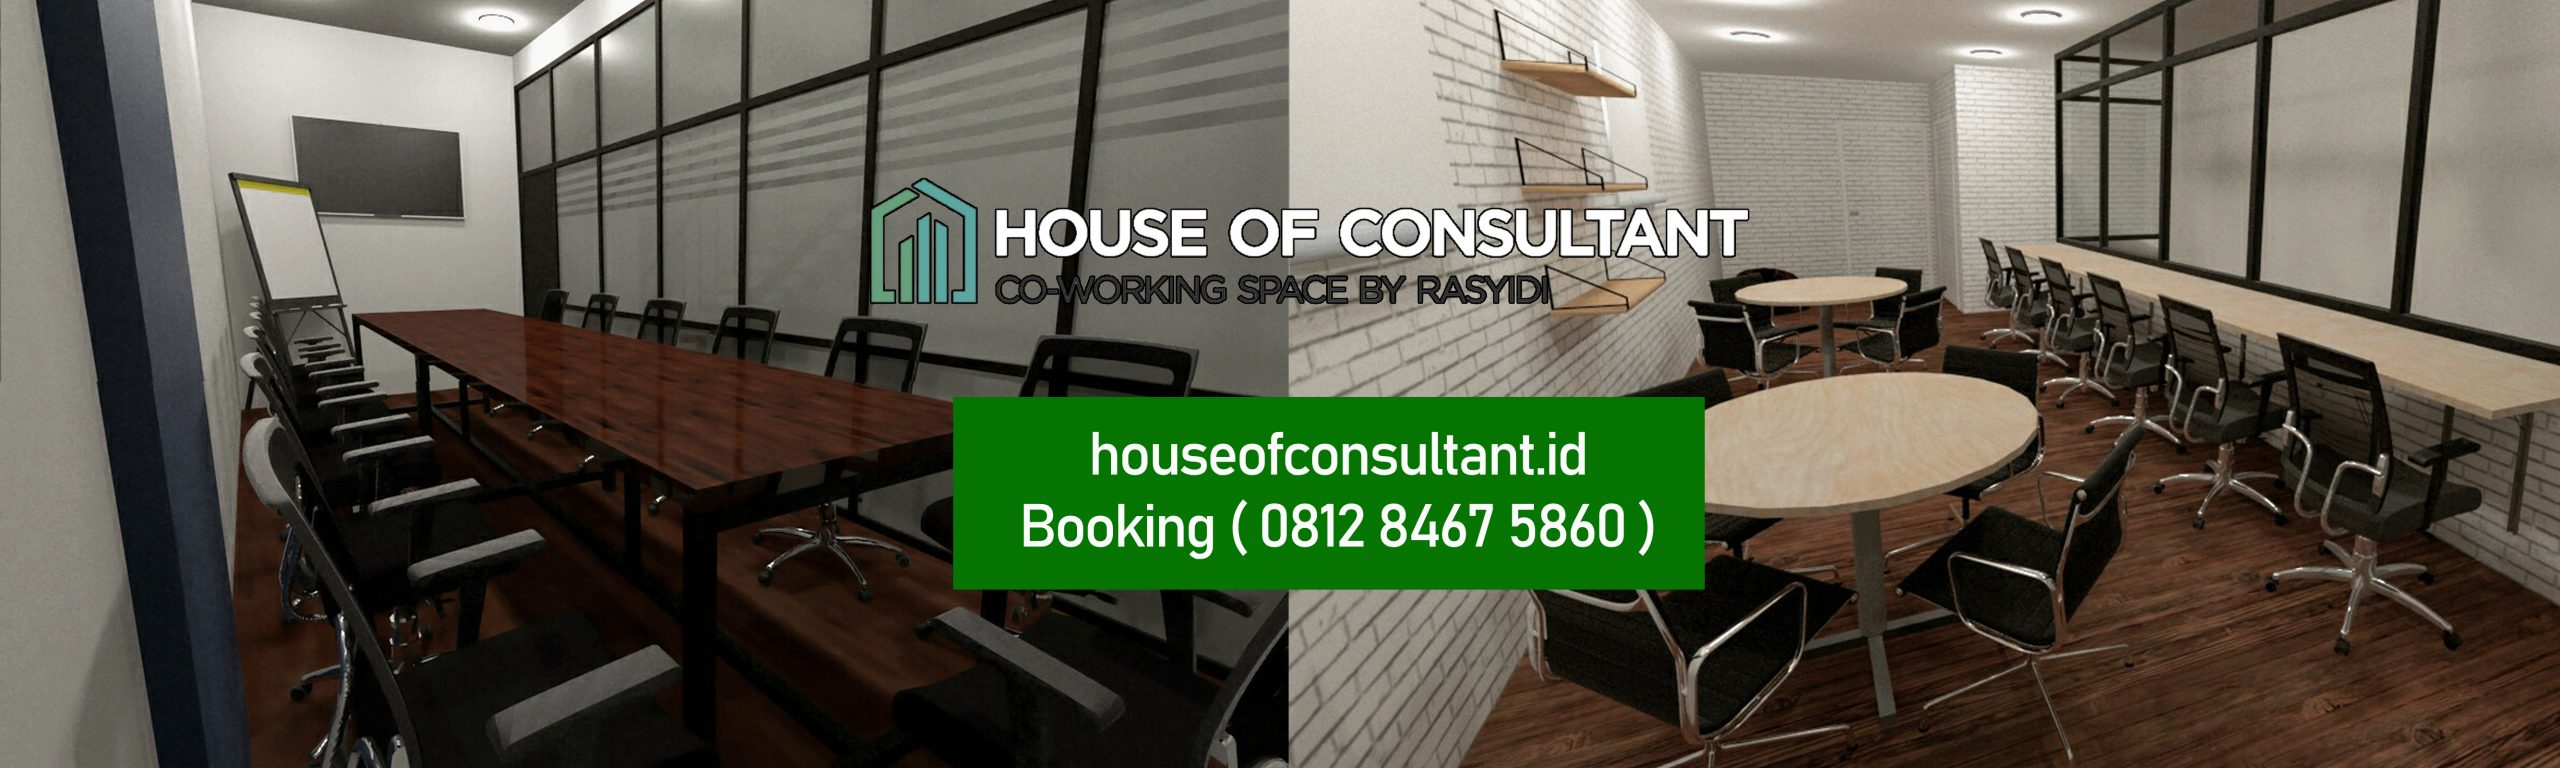 House of Consultant SLider Image Web Rasyidi